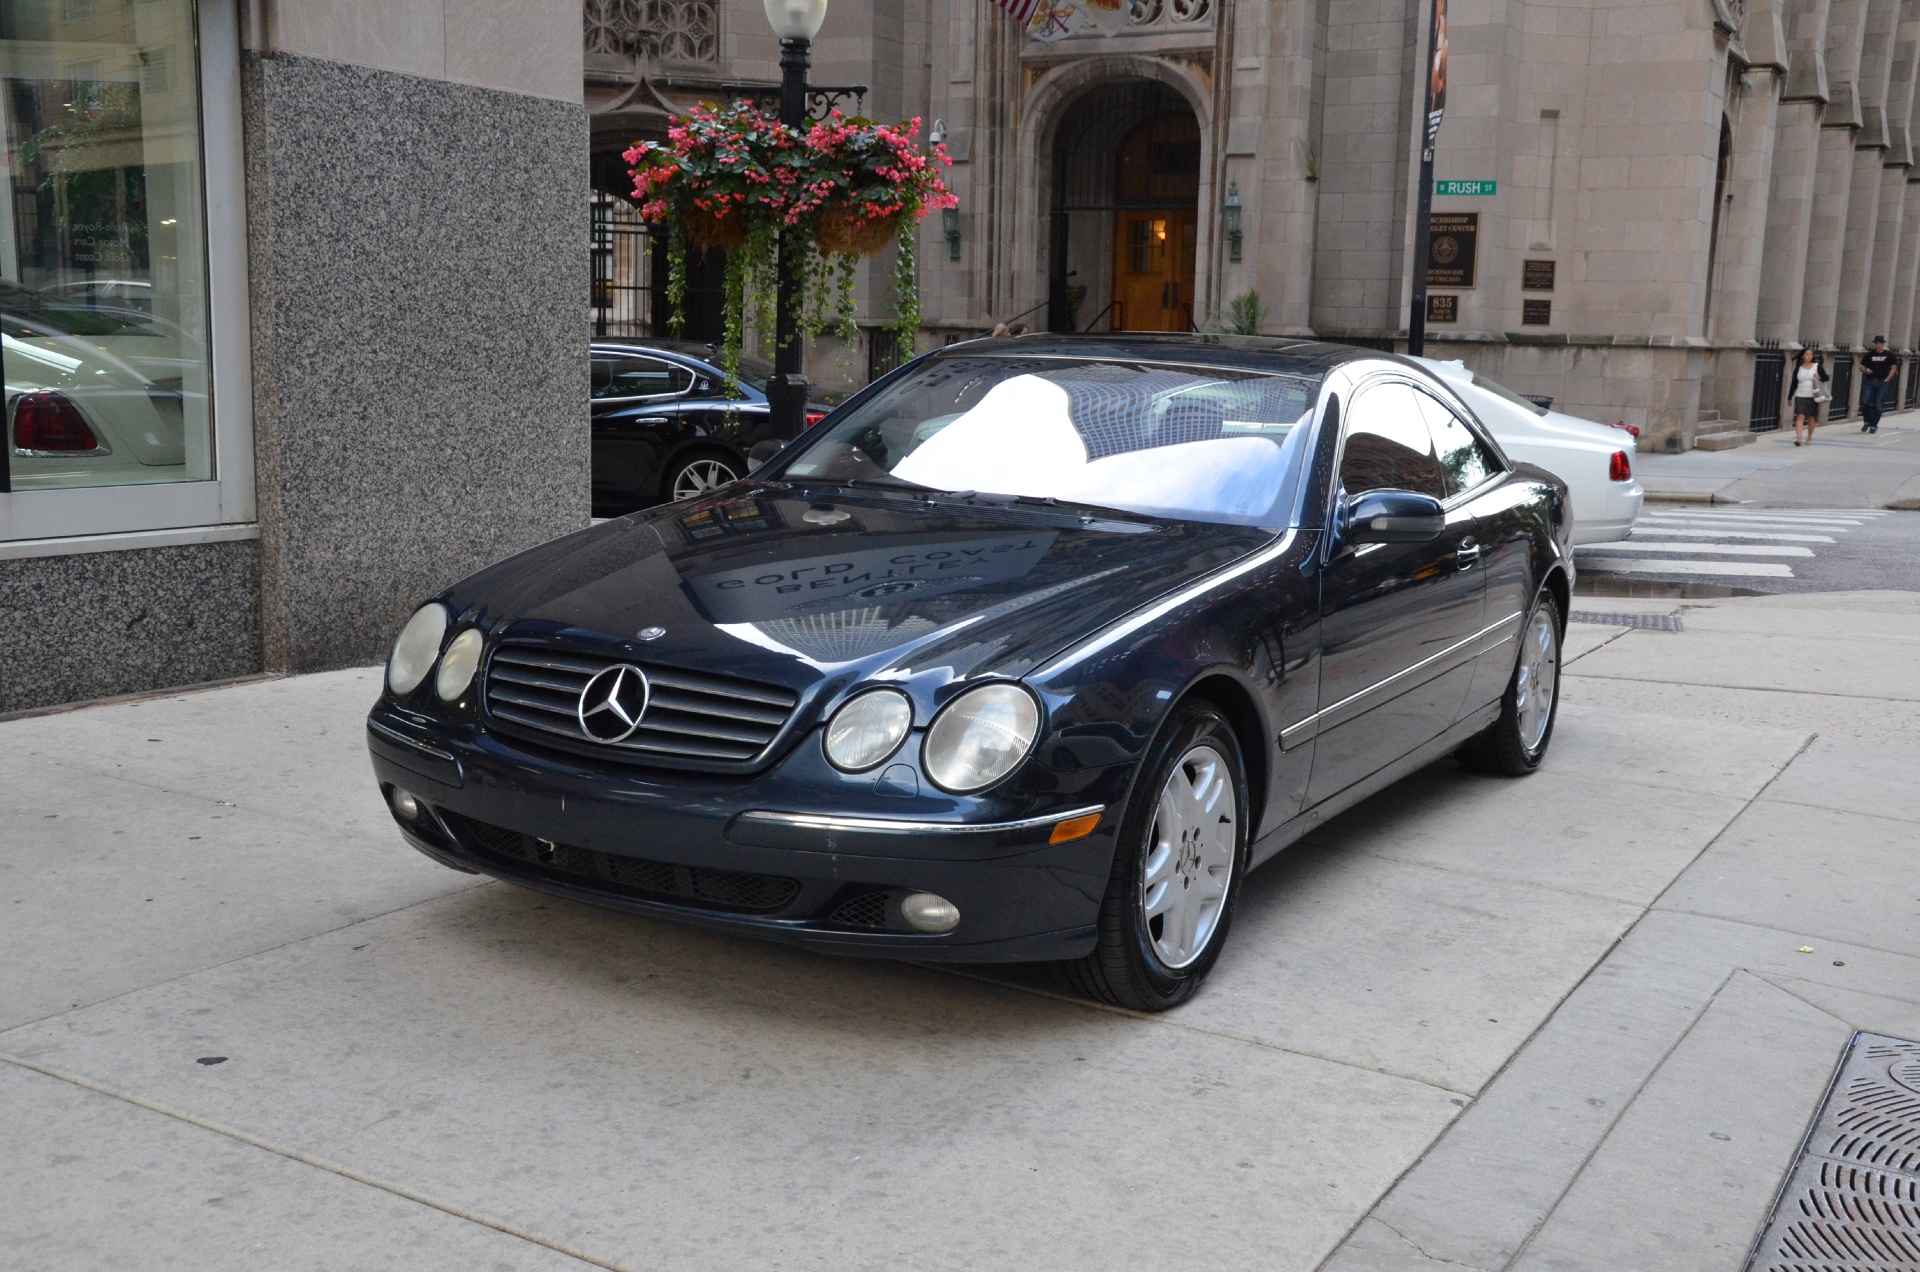 2002 mercedes benz cl class cl500 used bentley used for 2002 mercedes benz cl class